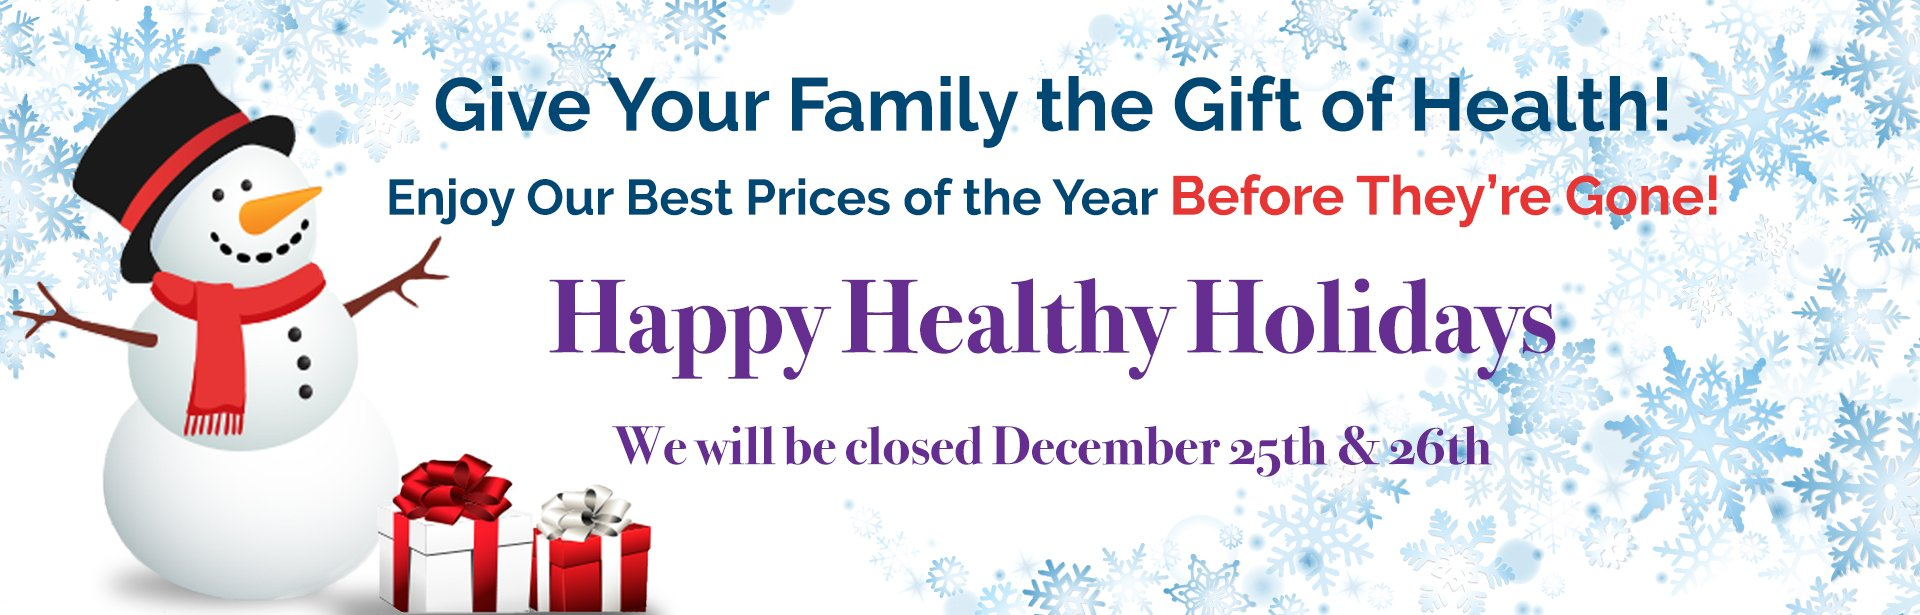 Enjoy our best prices of the year before they are gone!